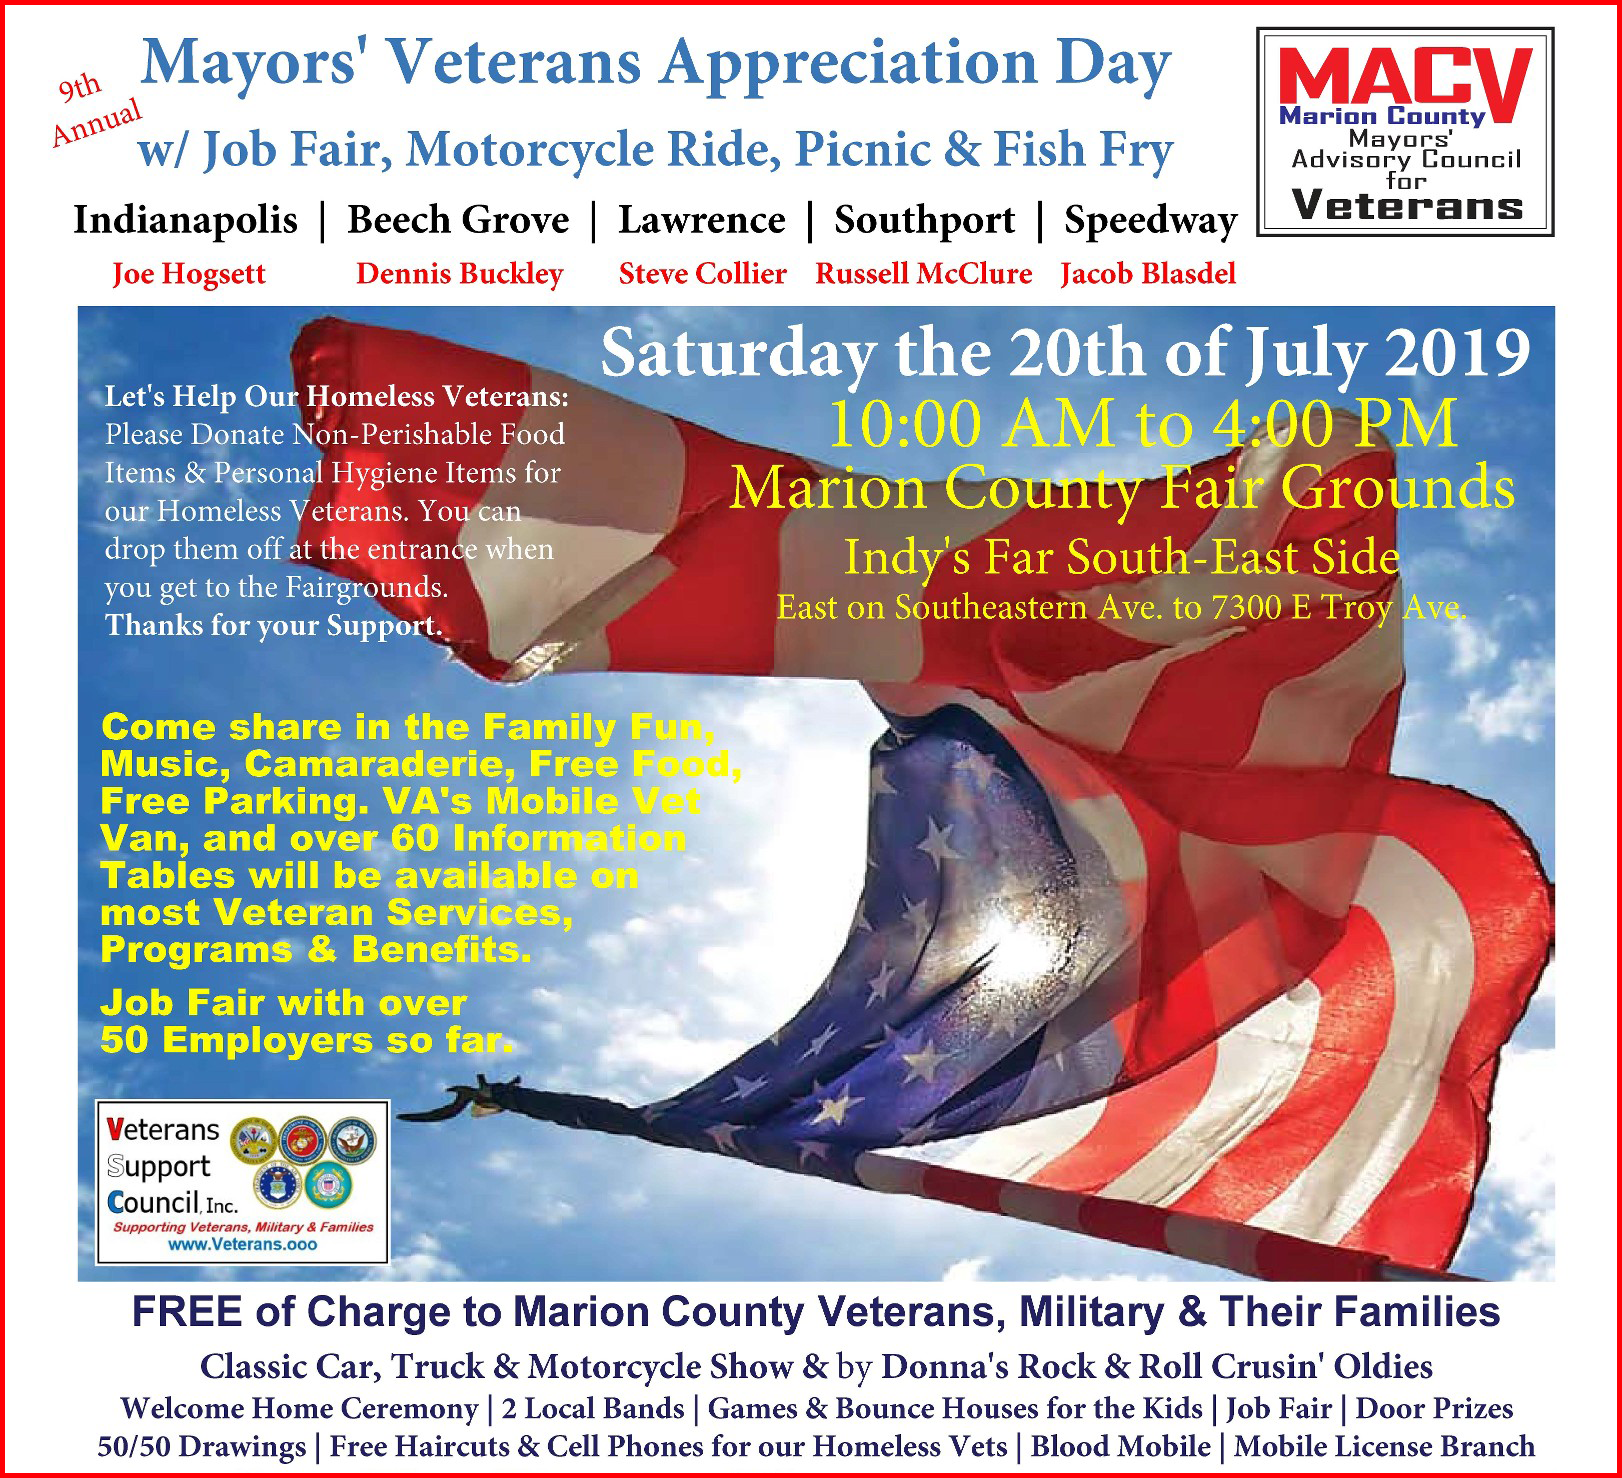 Click on Picture to Download the Mayors' Veterans Appreciation Day Flyer